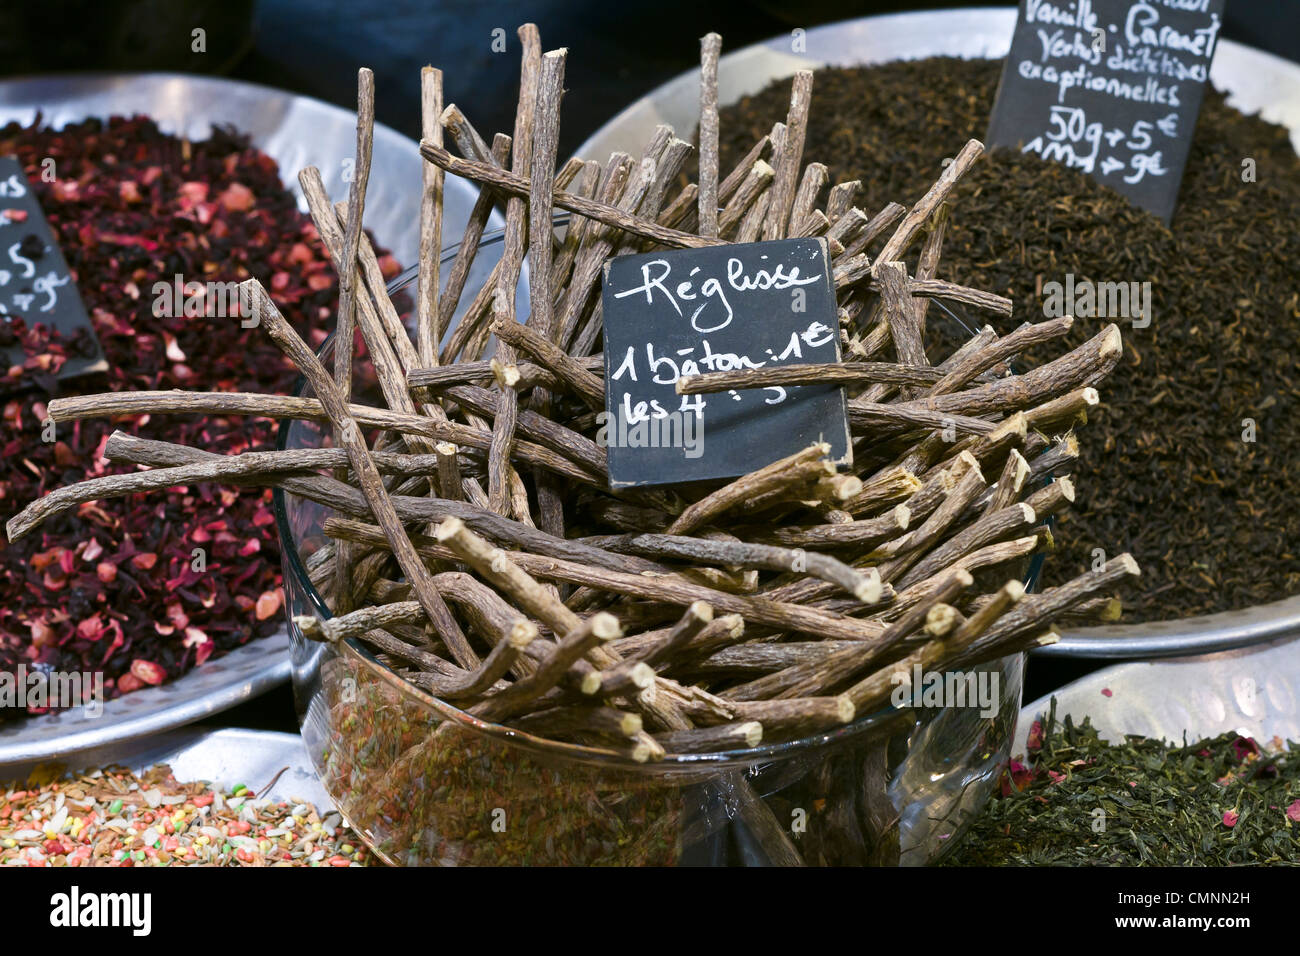 liquorice root spices booth International Tourism Show 2012 Paris - Stock Image